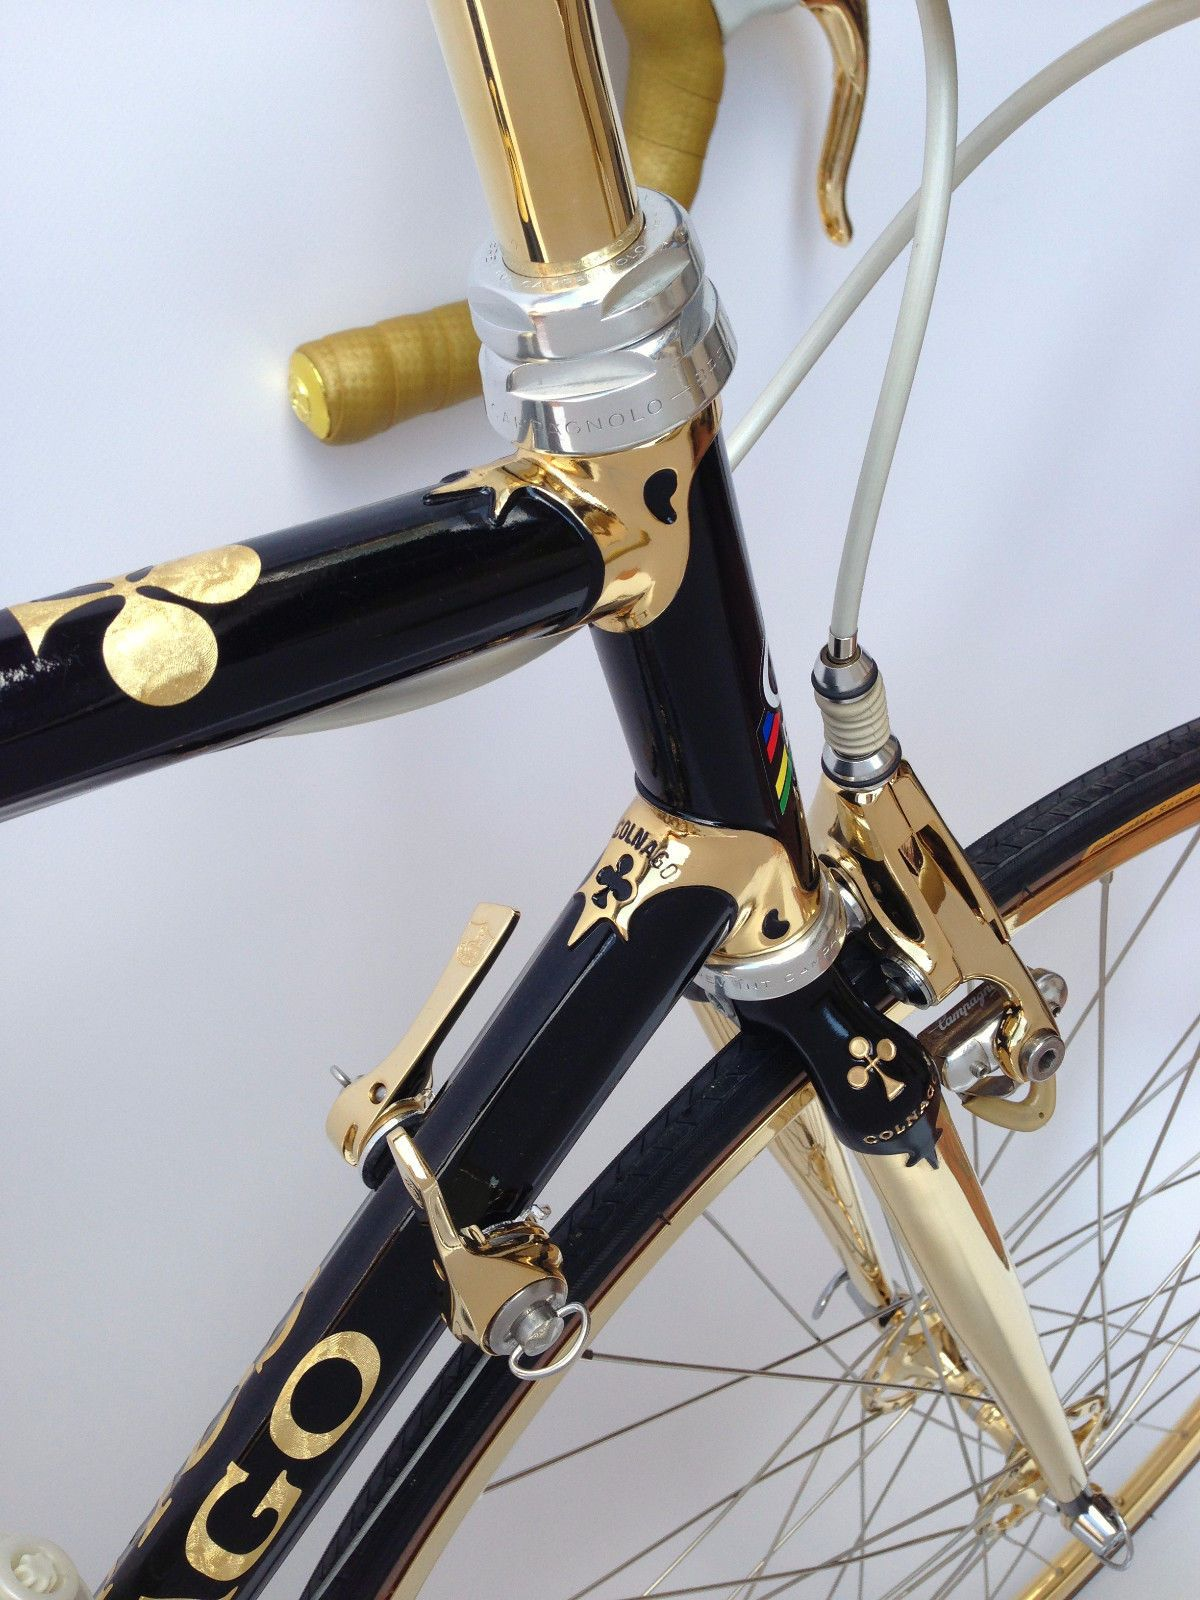 24k Gold Plated Campagnolo C Record Delta Brake Calipers Perforated Club Logo And Pantographed Ernesto Colnago Vintage Bicycle Parts Bike Frame Retro Bicycle